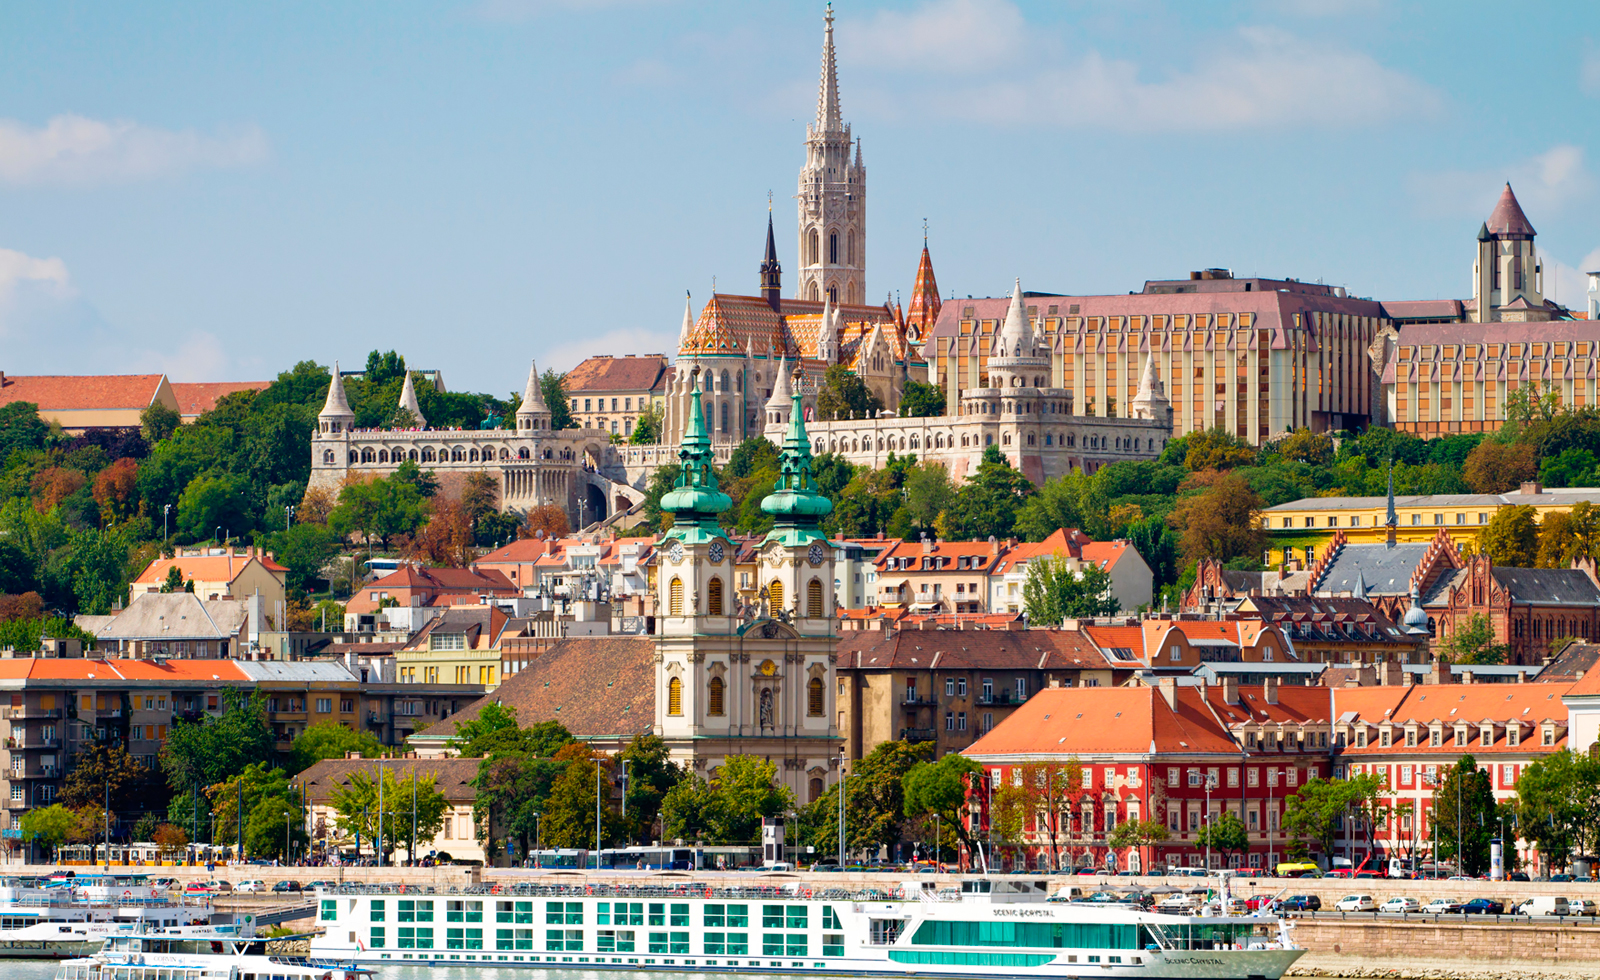 Budapest One of Best Places to Visit in Europe - Gets Ready